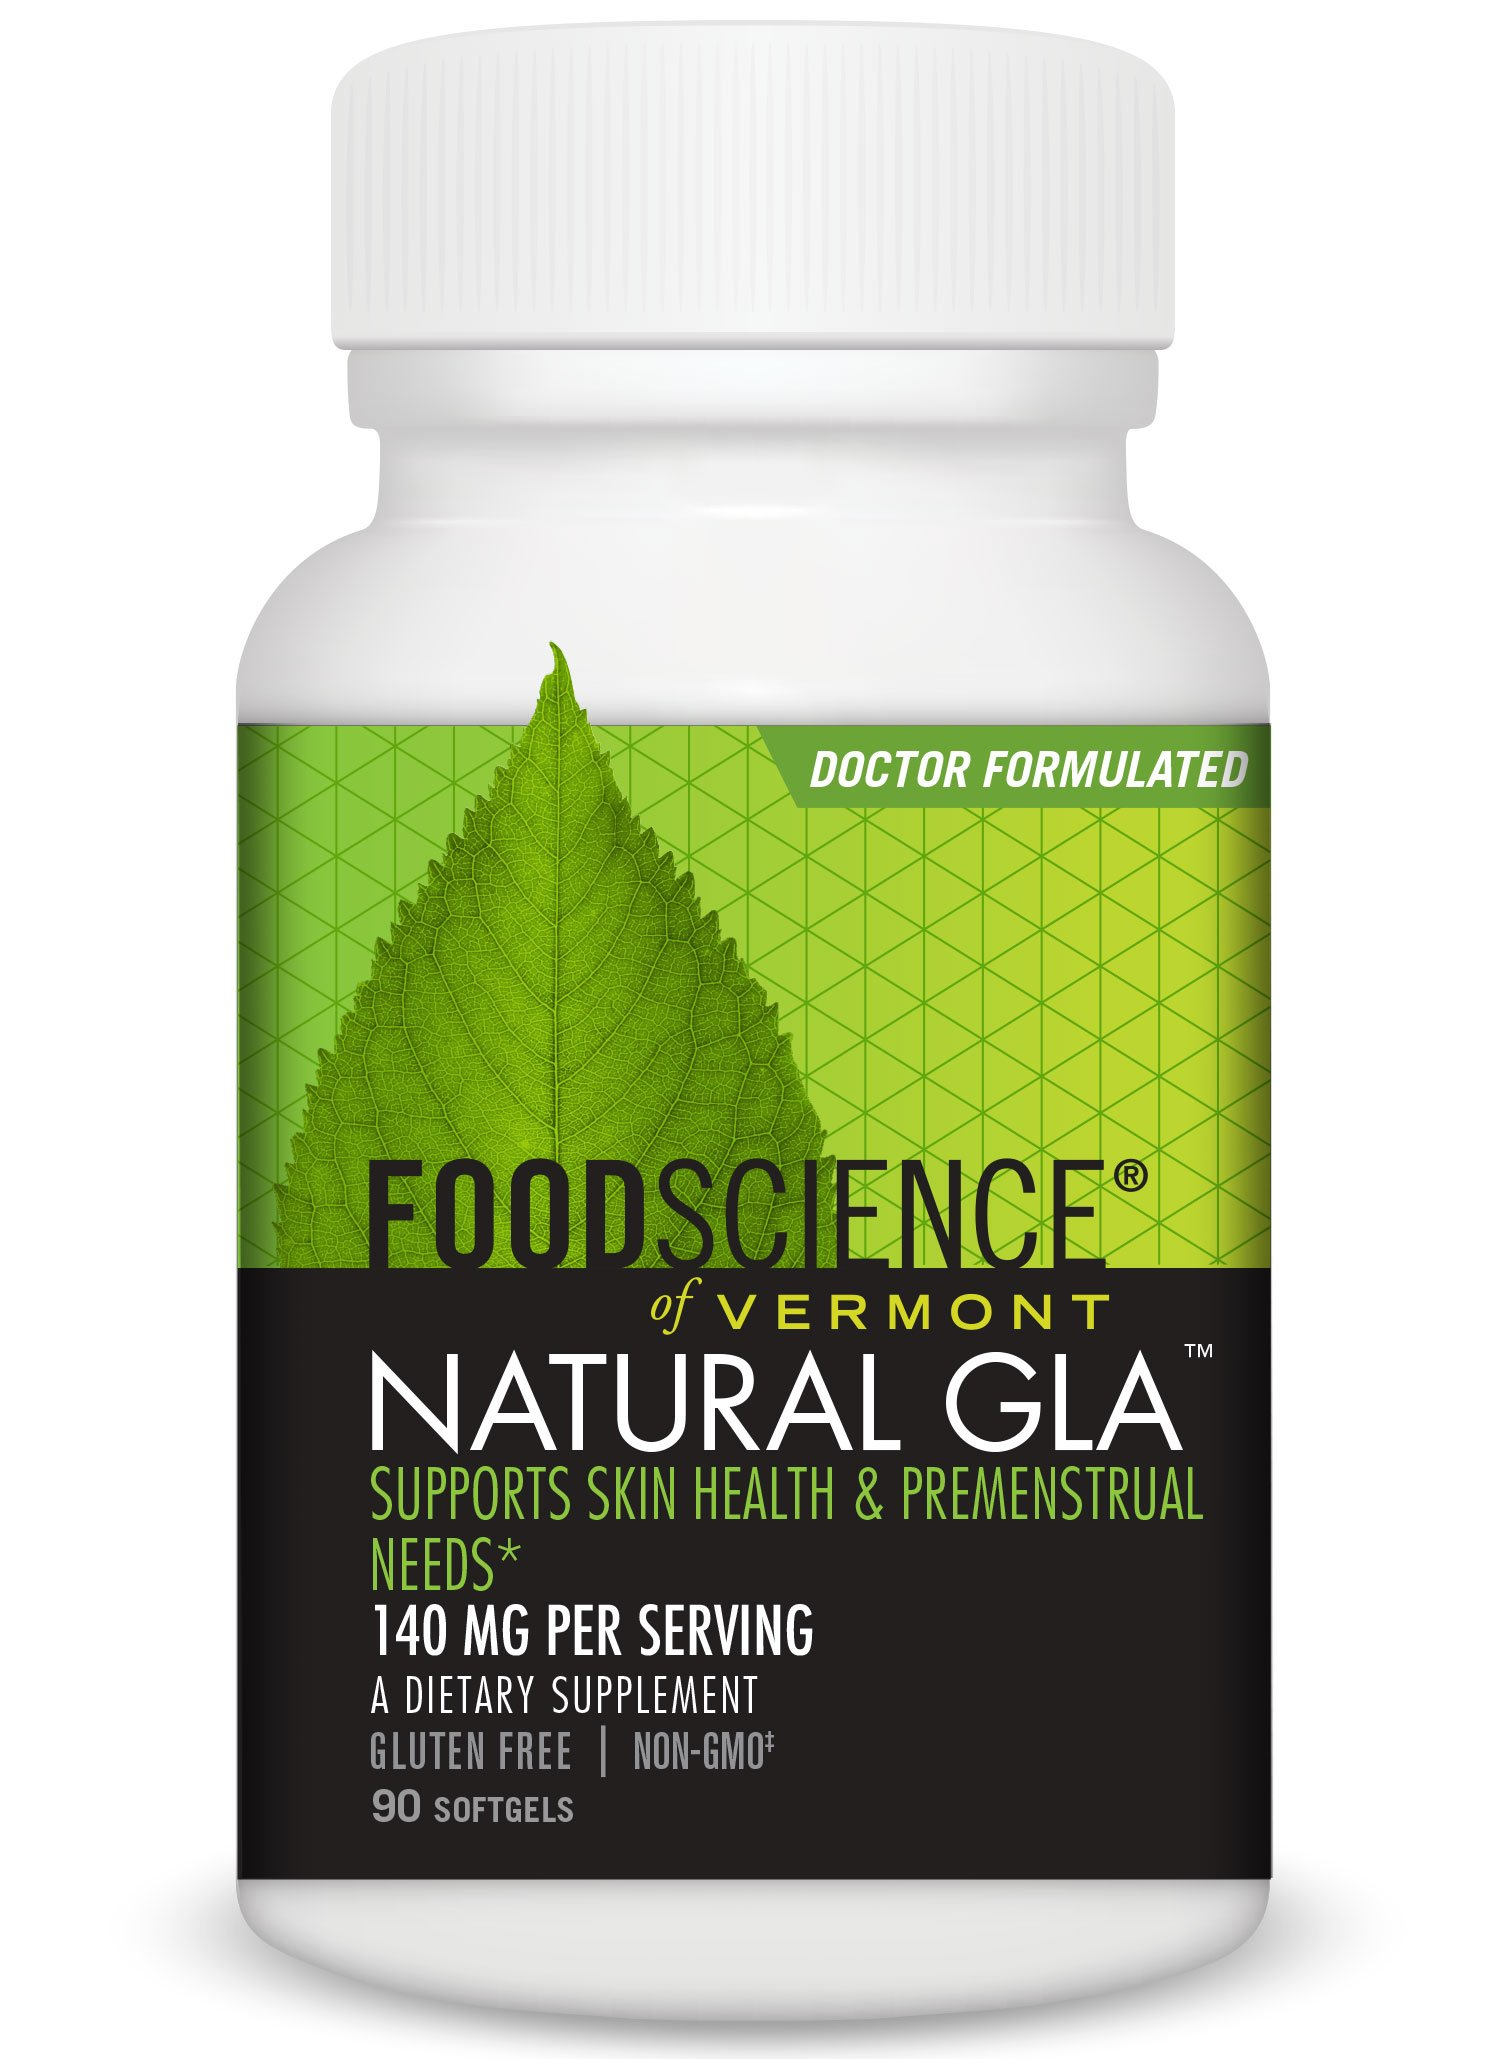 FoodScience of Vermont Natural GLA, Black Currant Seed Dietary Supplement, 90 Soft Gels